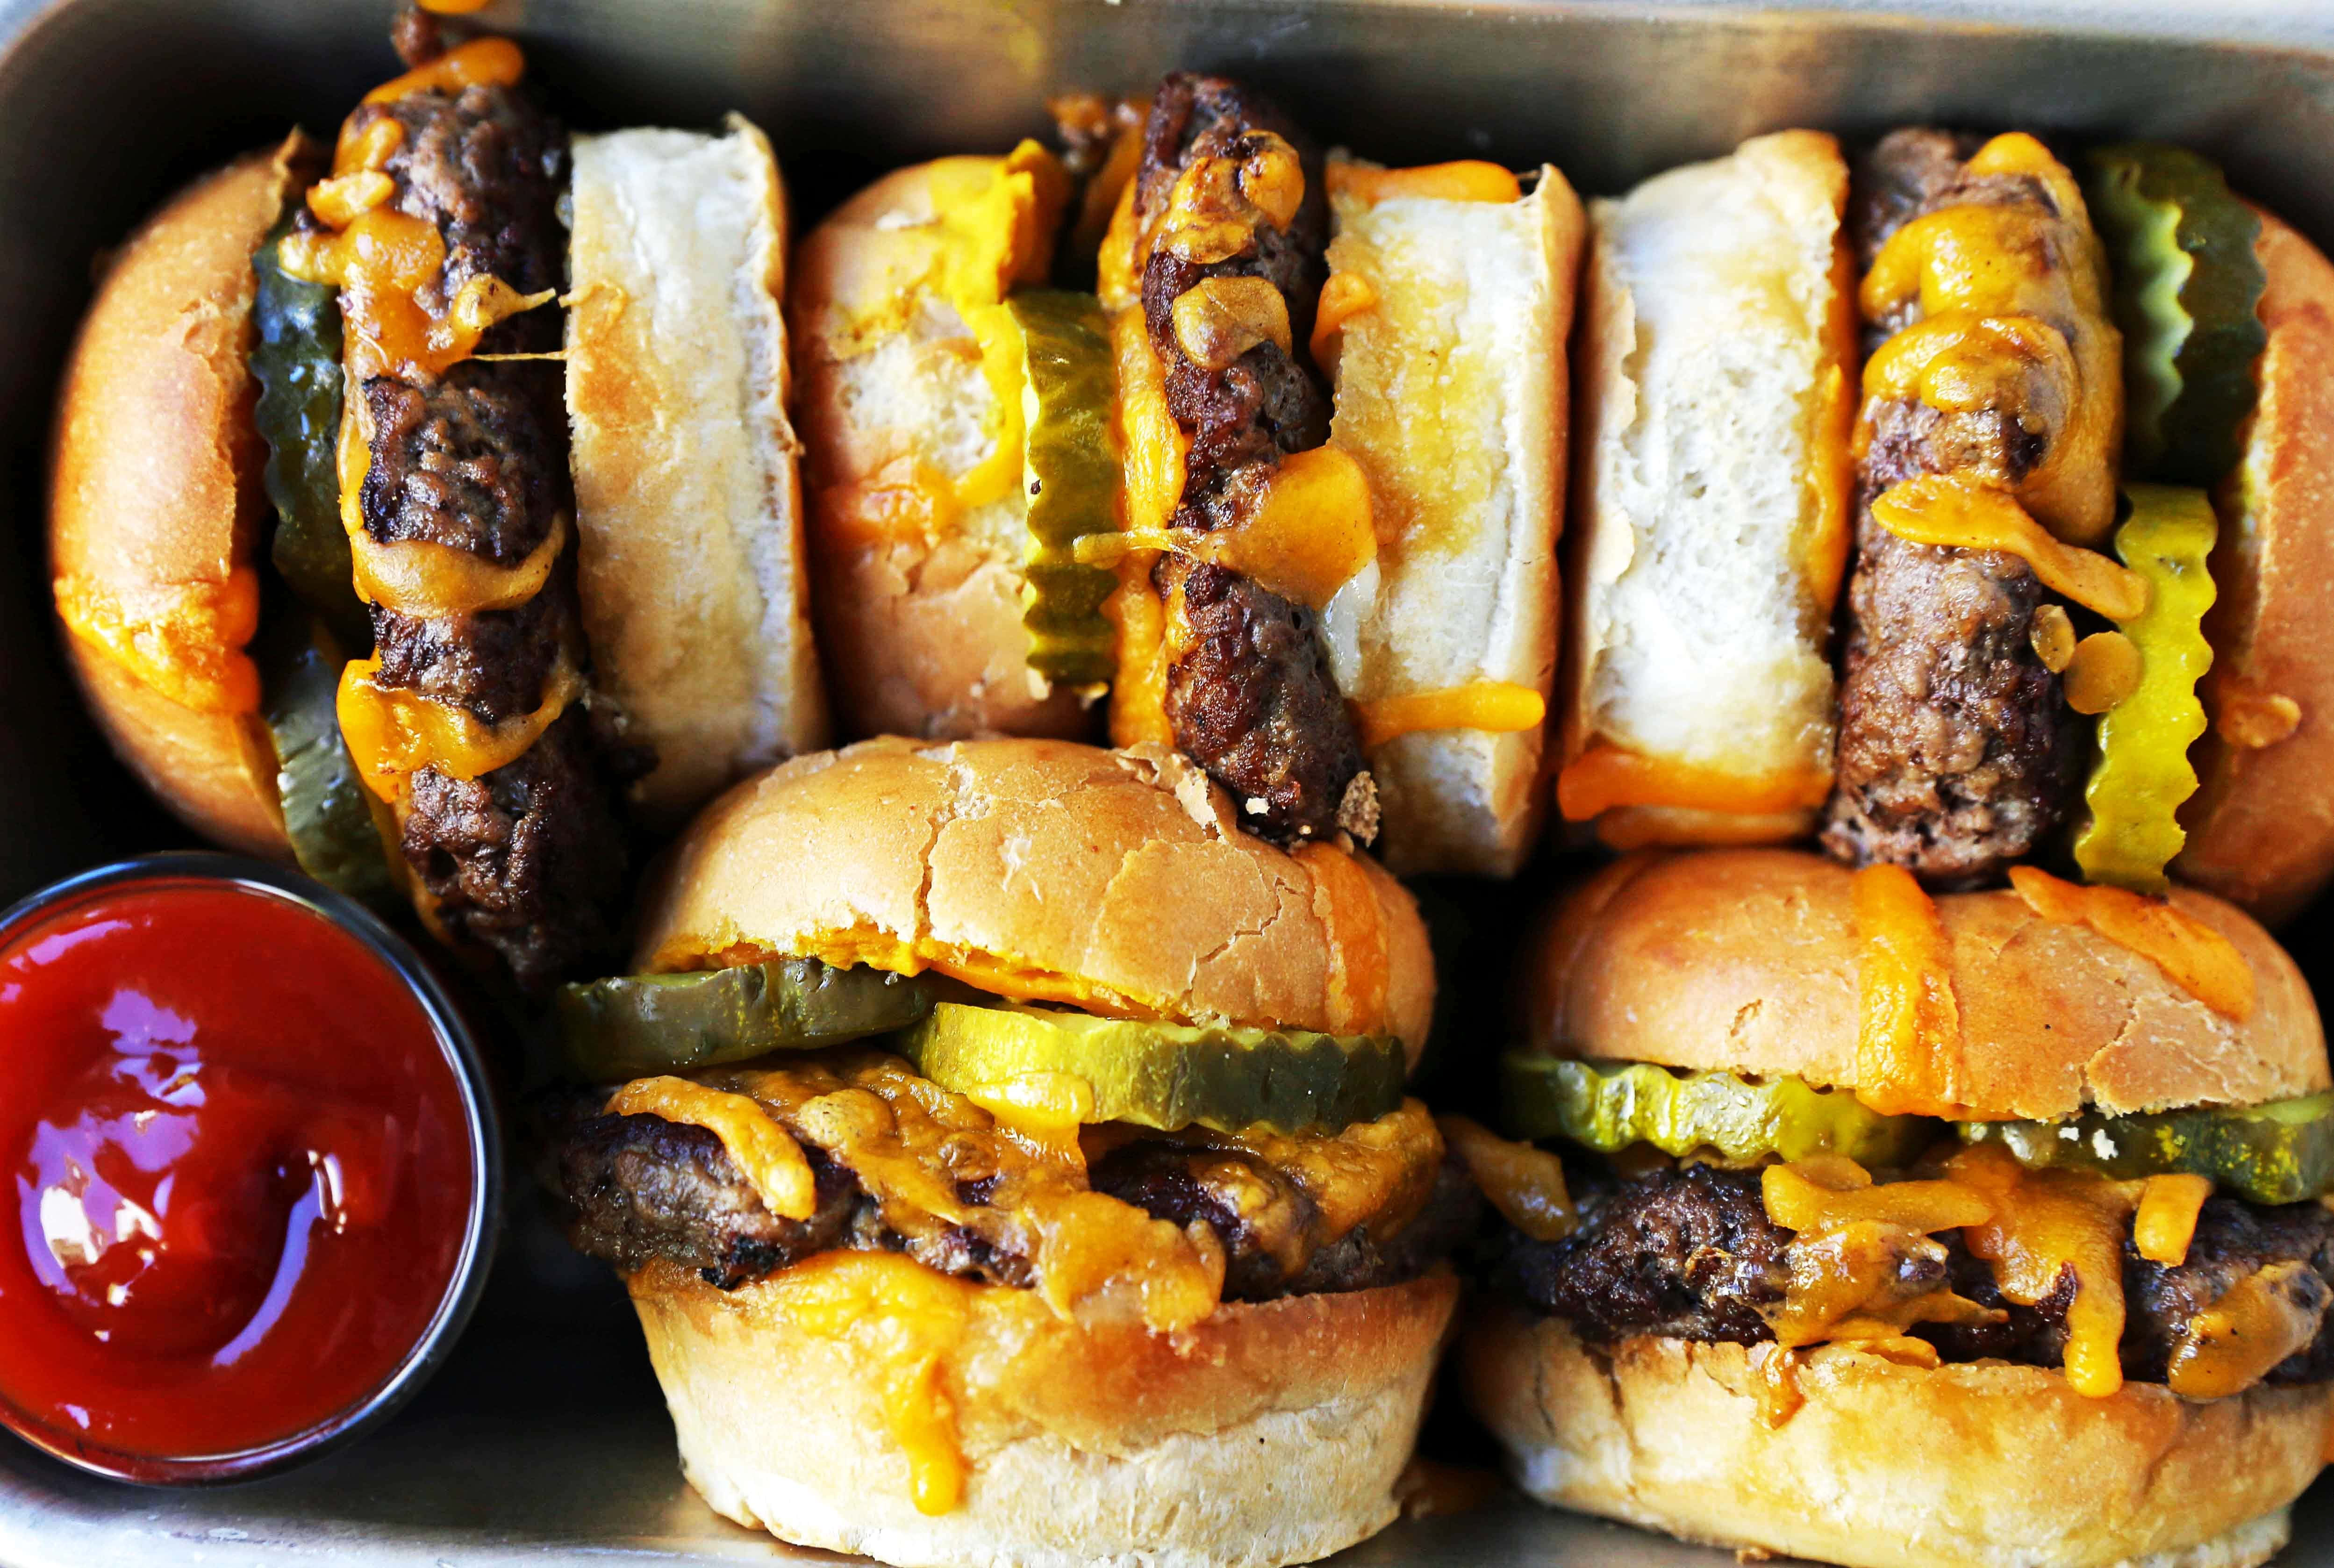 Cheeseburger Sliders. How to make the perfect cheese sliders. Super Bowl food. www.modernhoney.com #sliders #cheeseburgers #hamburgers #burgers #burger